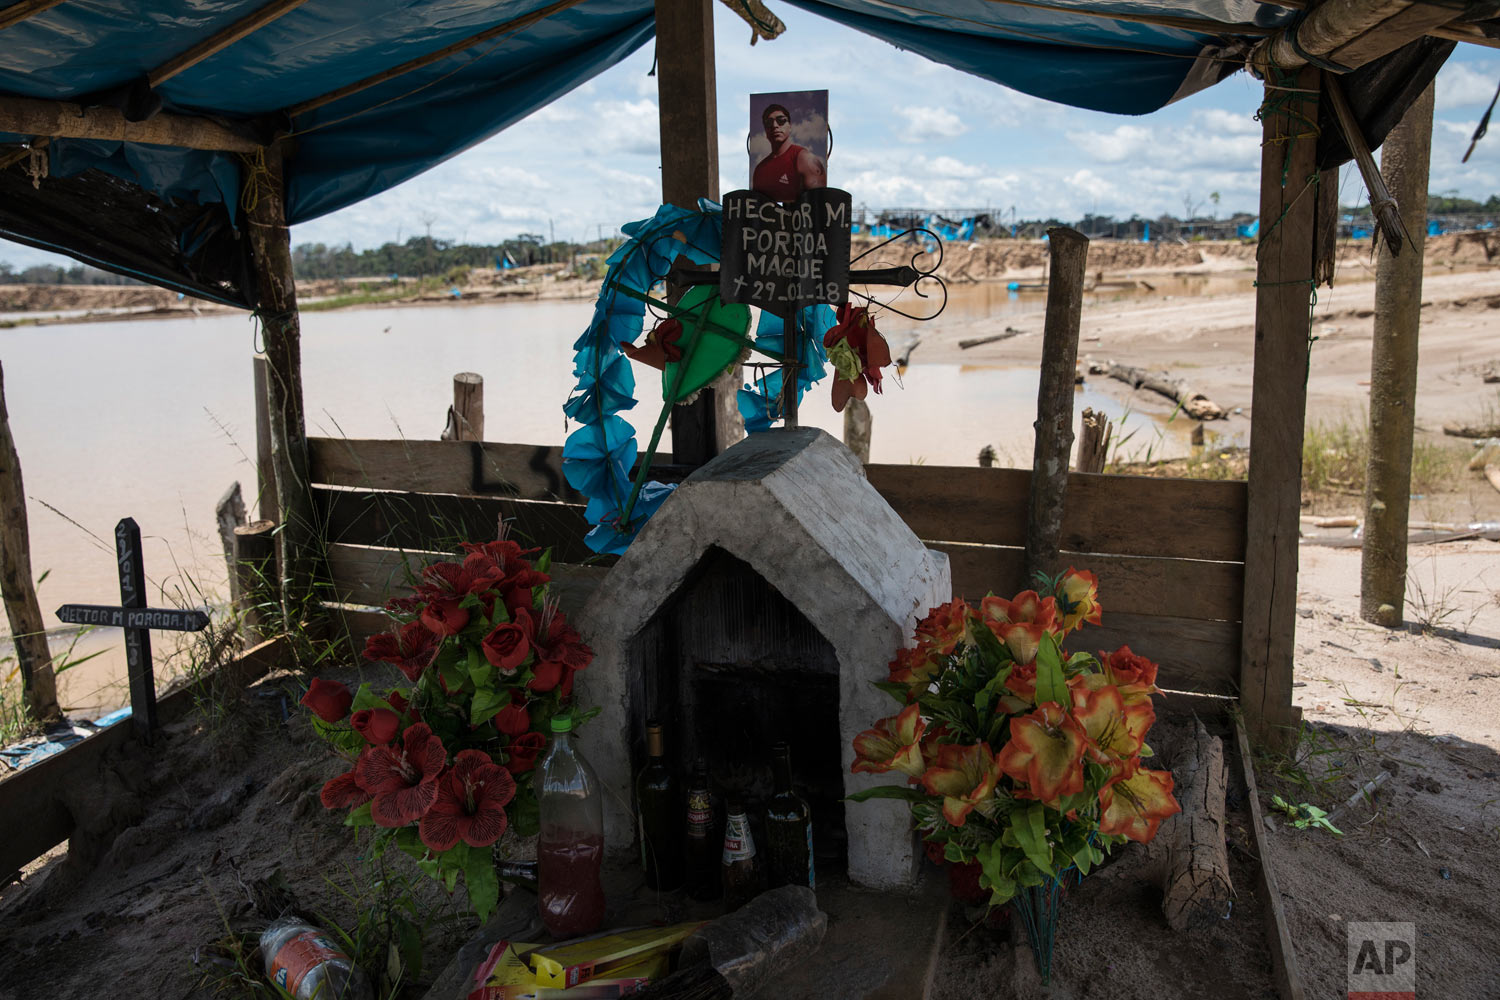 A memorial adorned with artificial flowers and bottles of alcohol inside a former illegal gold mining camp that has been occupied by special forces and converted into the Balata police and military base, March 28, 2019, in Peru's Tambopata province. The base now occupied by security forces is surrounded by two lakes contaminated with mercury, as well as debris left over by miners. (AP Photo/Rodrigo Abd)